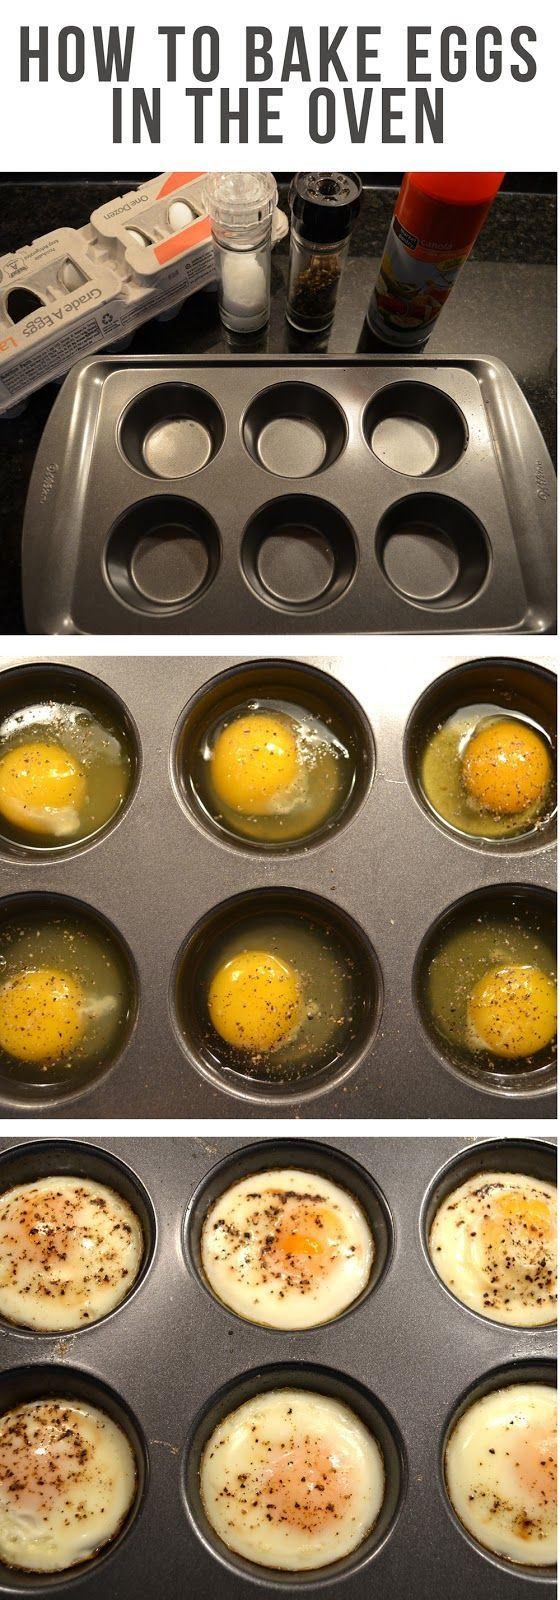 No peeling egg shells off! Good snack that'll hold you a while >> How to Bake Eggs in the Oven